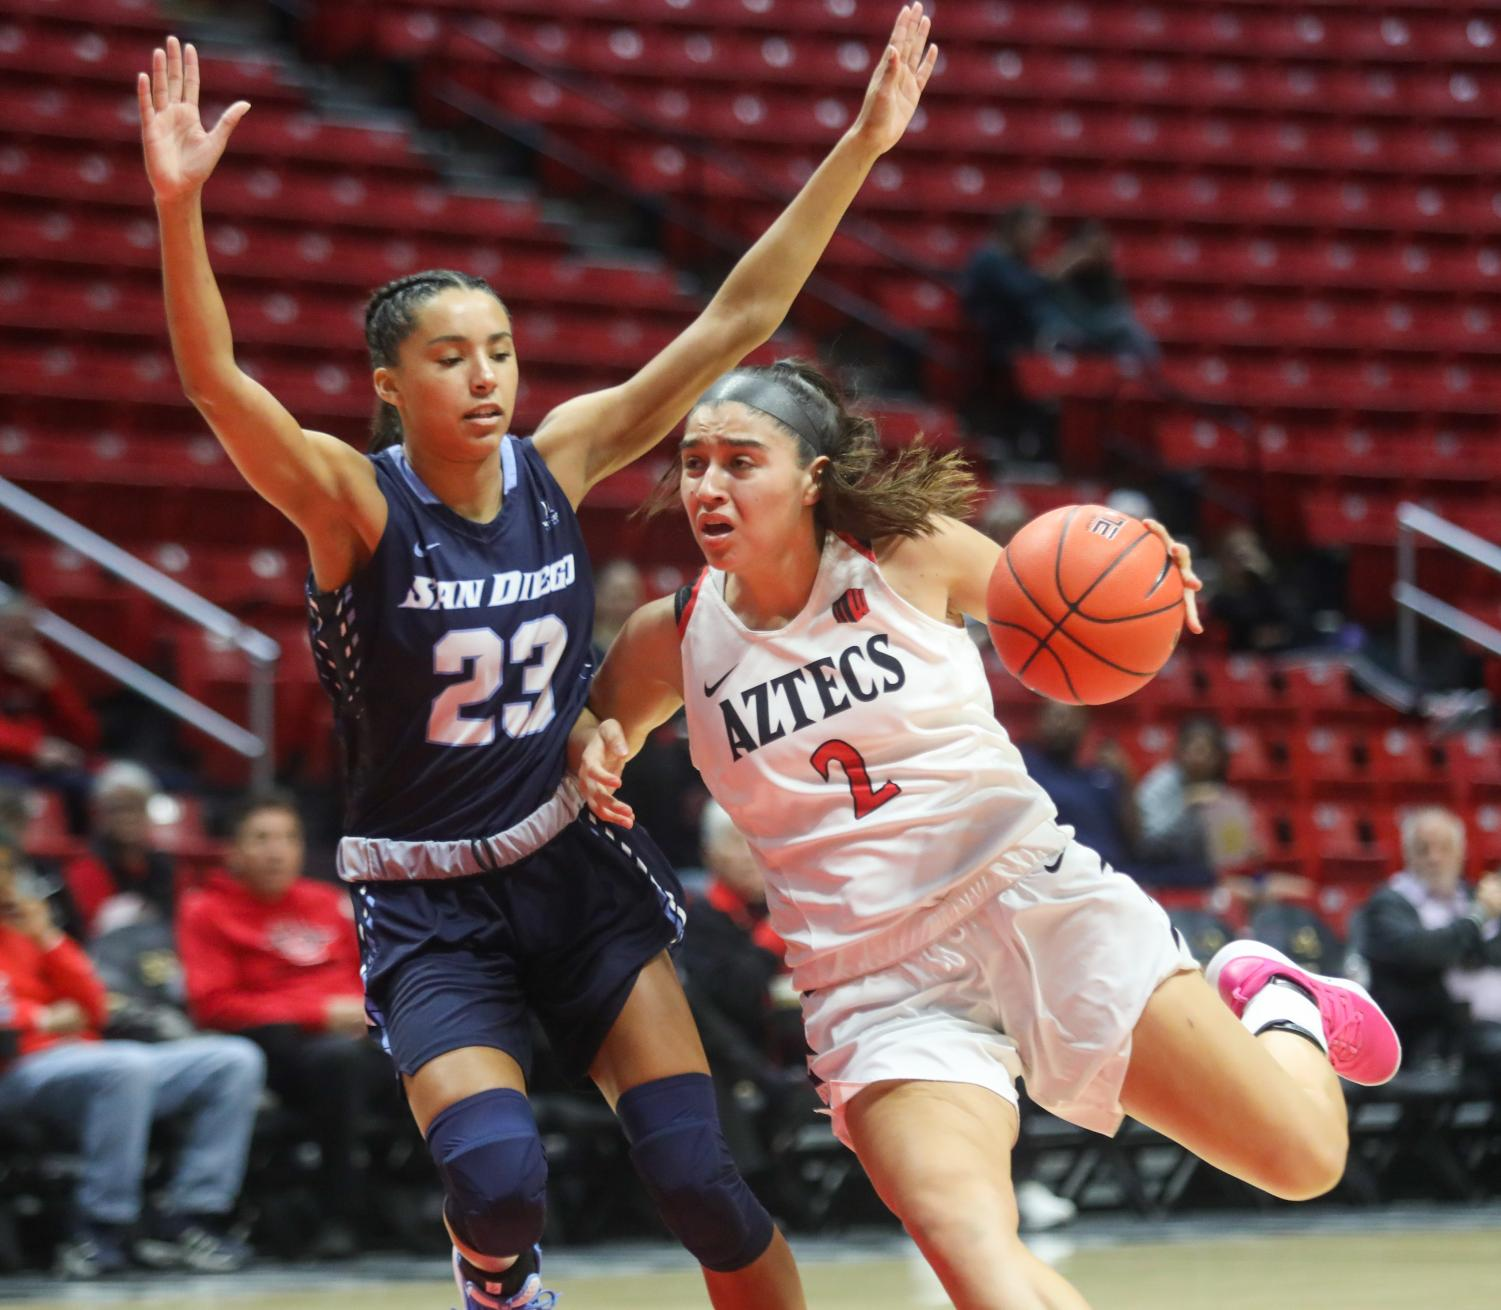 Sophomore guard Sophia Ramos attempts to shrug off a San Diego defender in the Aztecs' 70-47 loss to the Toreros on Dec. 11 at Viejas Arena.